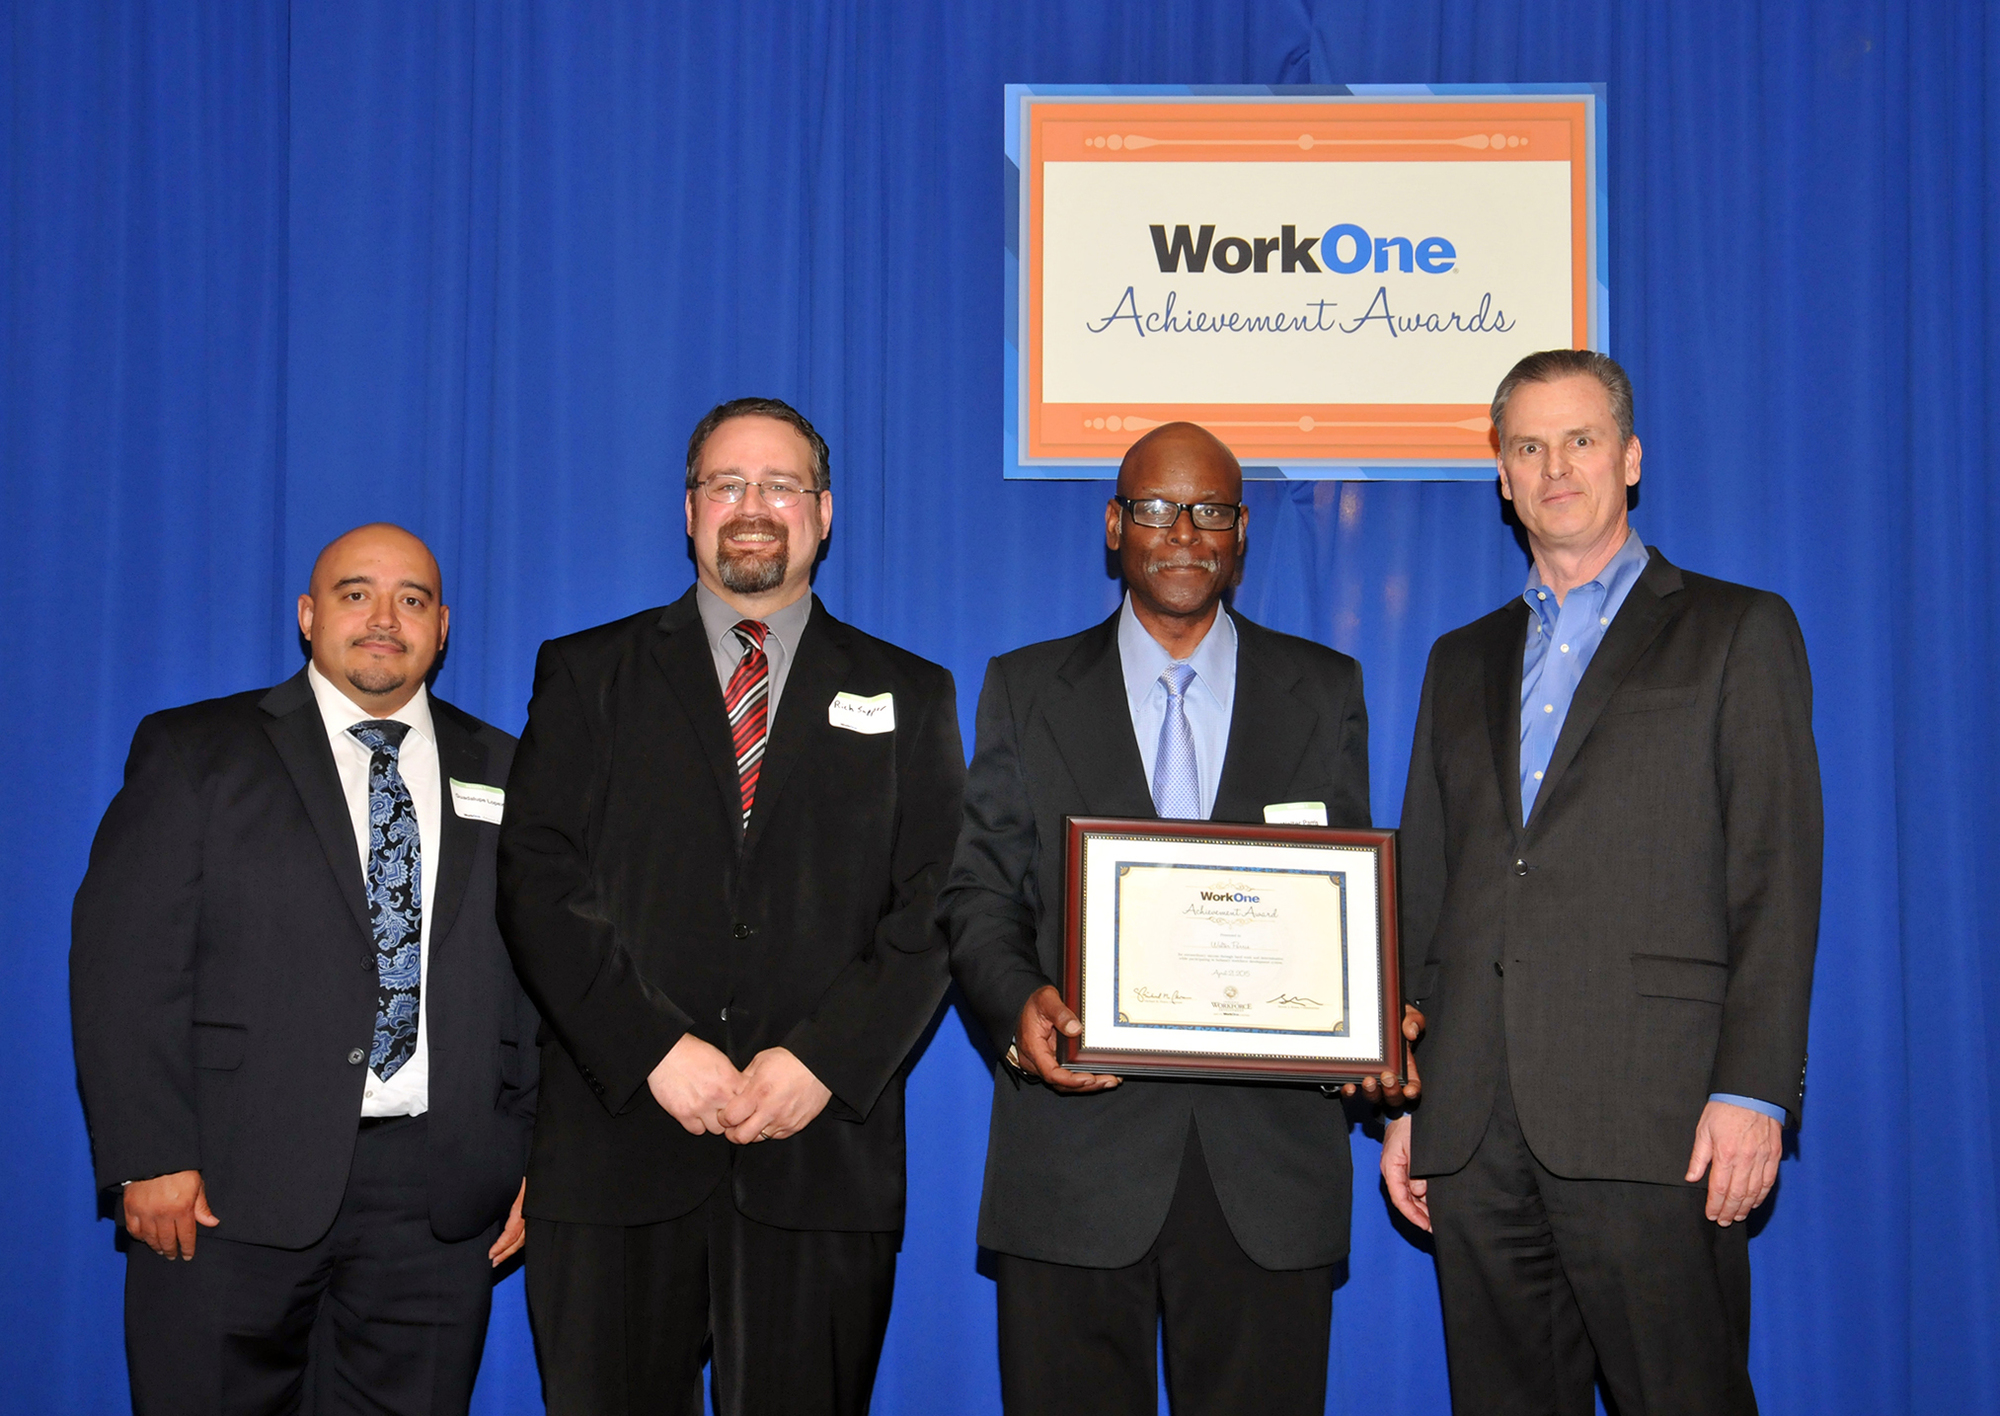 Walter Parris of East Chicago Receives WorkOne Achievement Award